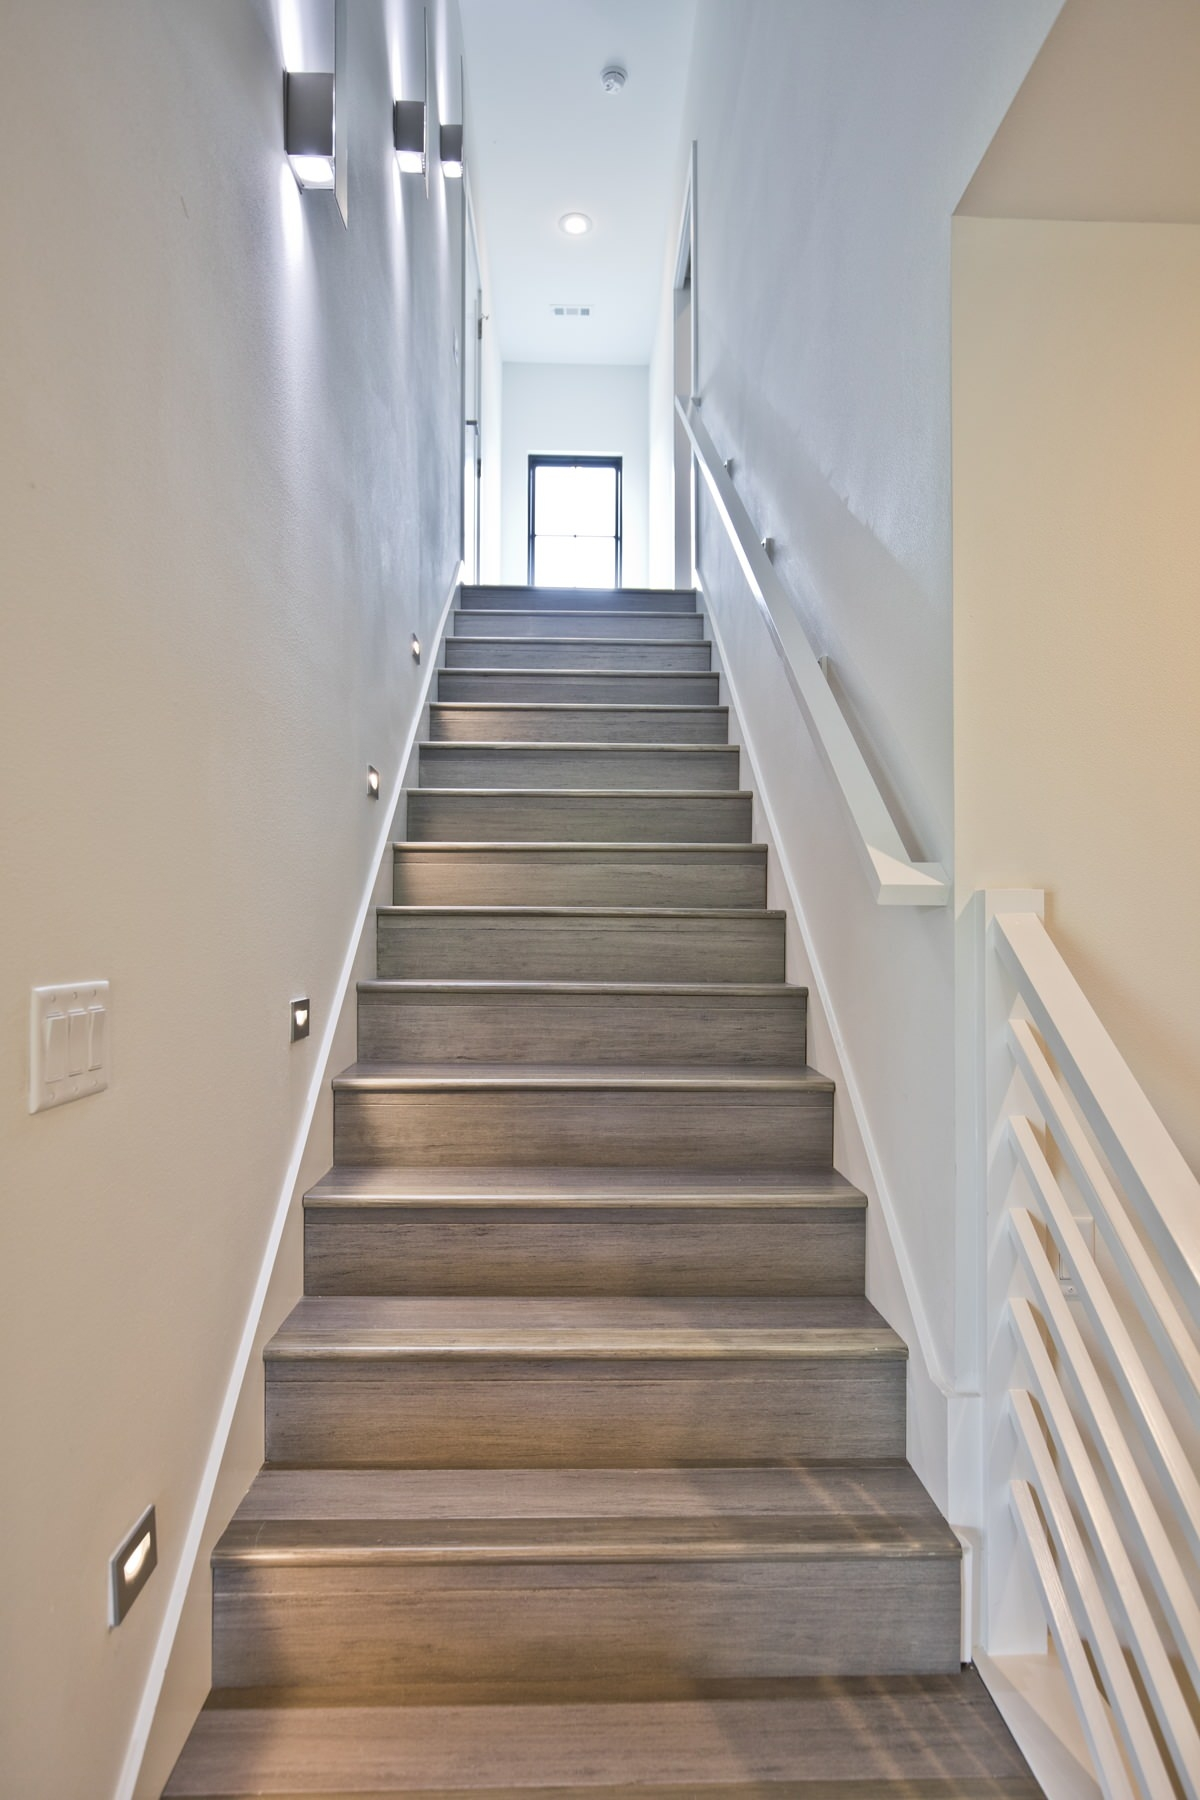 75 Beautiful Staircase Pictures Ideas September 2020 Houzz | Stairs Design Inside Home | Interior Staircase Simple | Wooden | Outside | Short | Behind Duplex